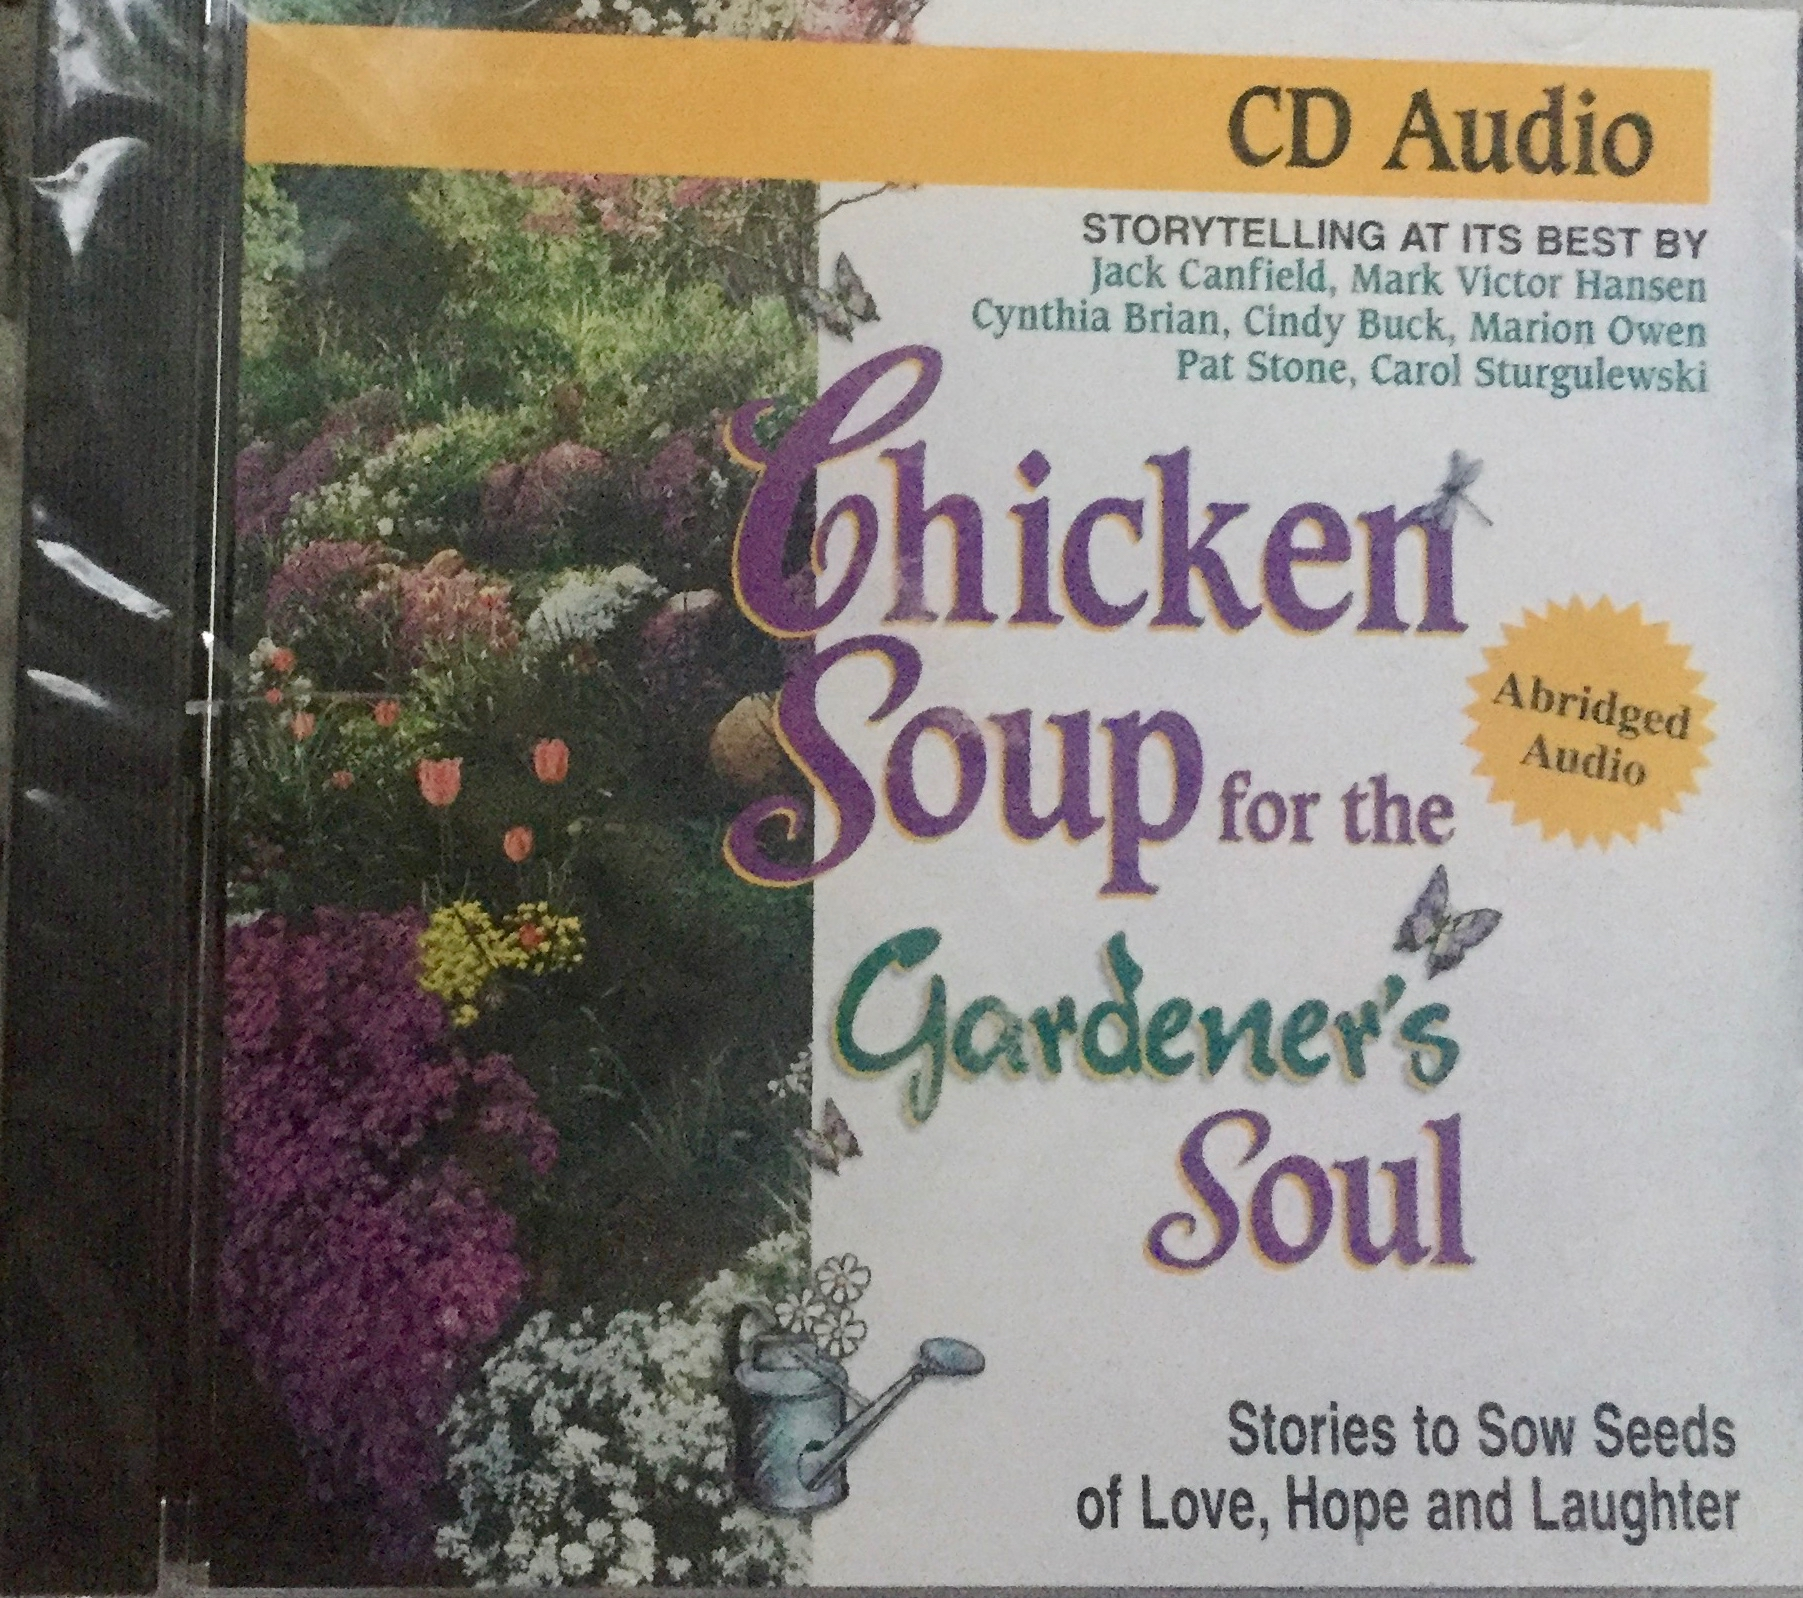 Audio CD chicken soup gardeners